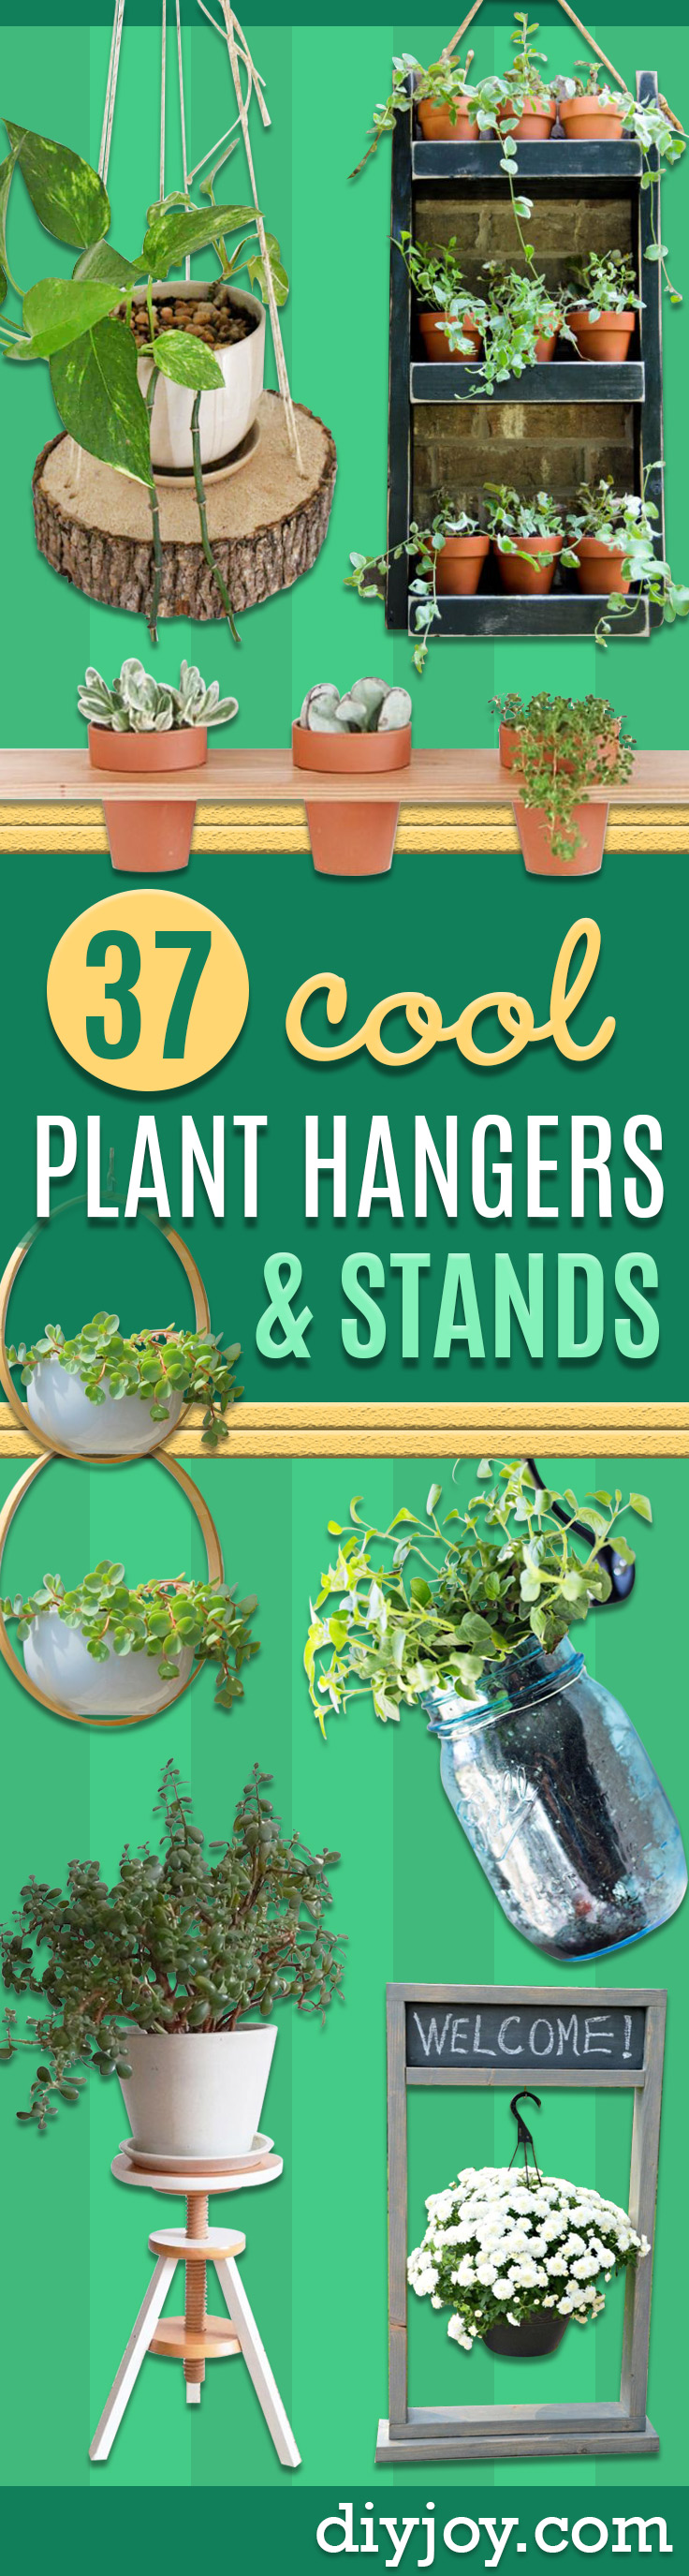 DIY Plant Hangers and Stands for Gardening Indoors and Outside - Cute and Easy Home Decor Ideas for Plants - How To Make Planters, Hanging Pot Holders, Wire, Rope and Baskets - Quick DIY Gifts Ideas, Macrame Plant Hanger